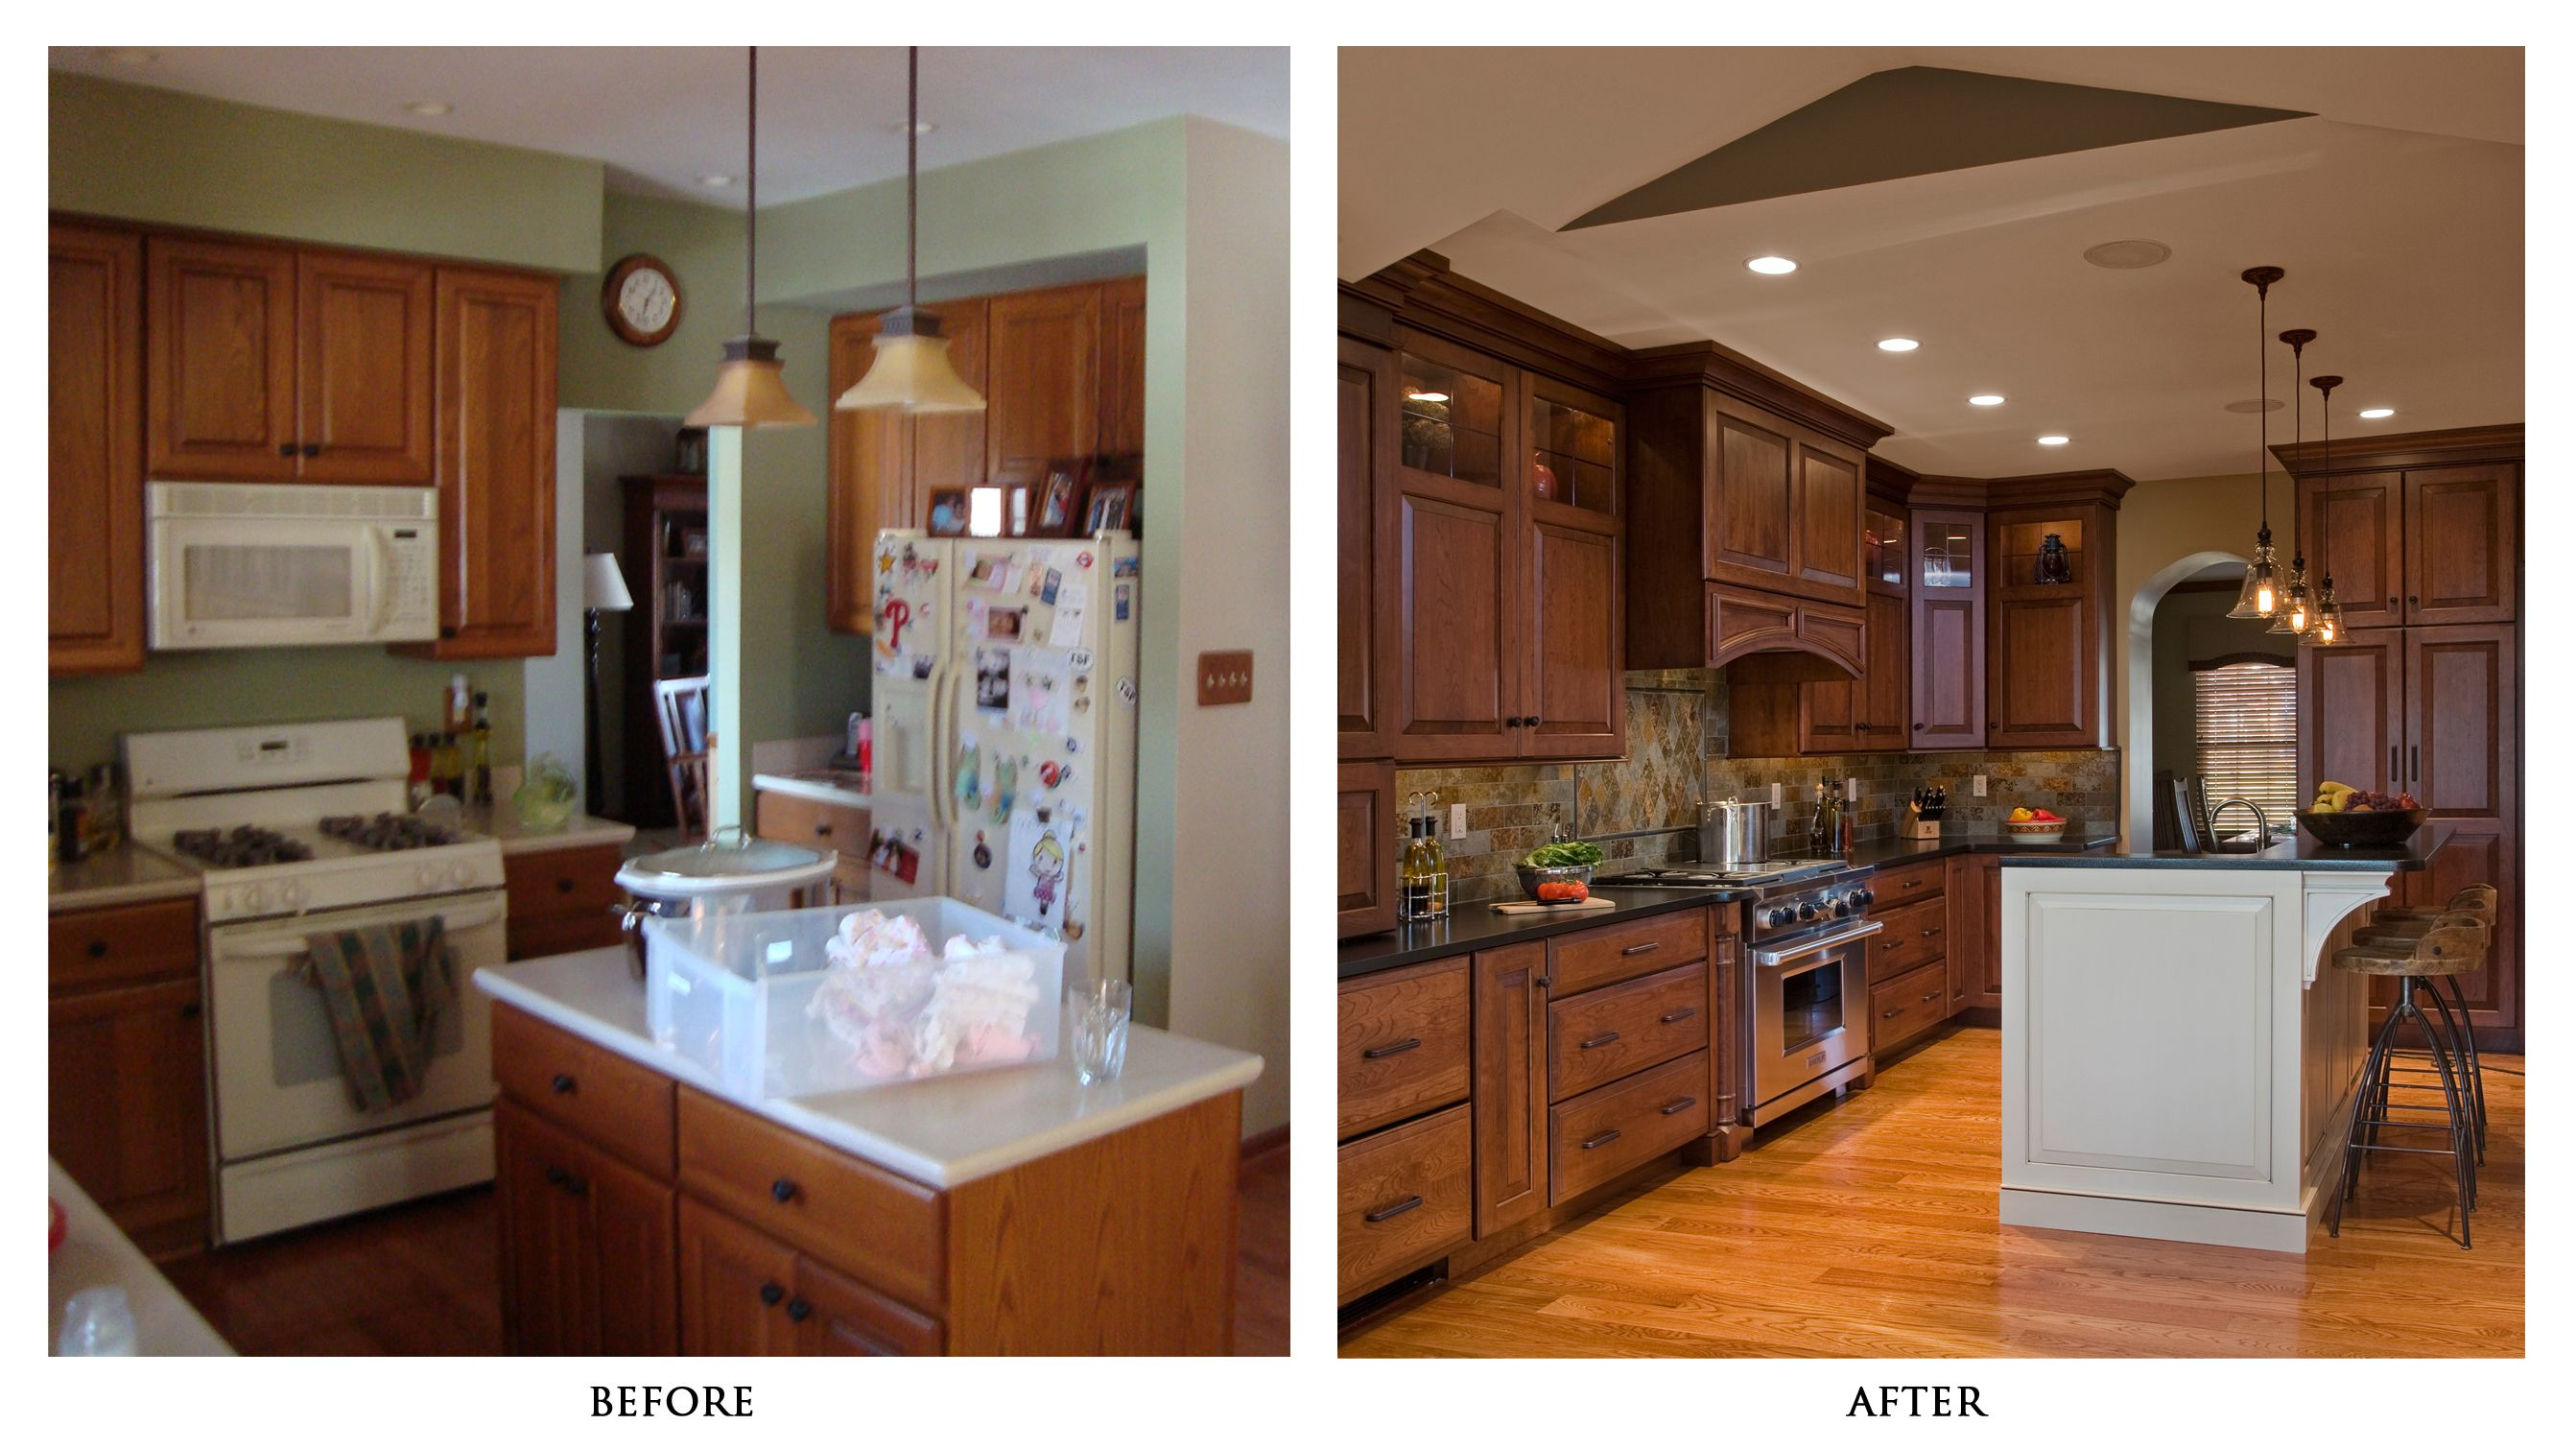 Remodel Kitchen Before And After kitchen remodels before and after photos | kitchen | pinterest